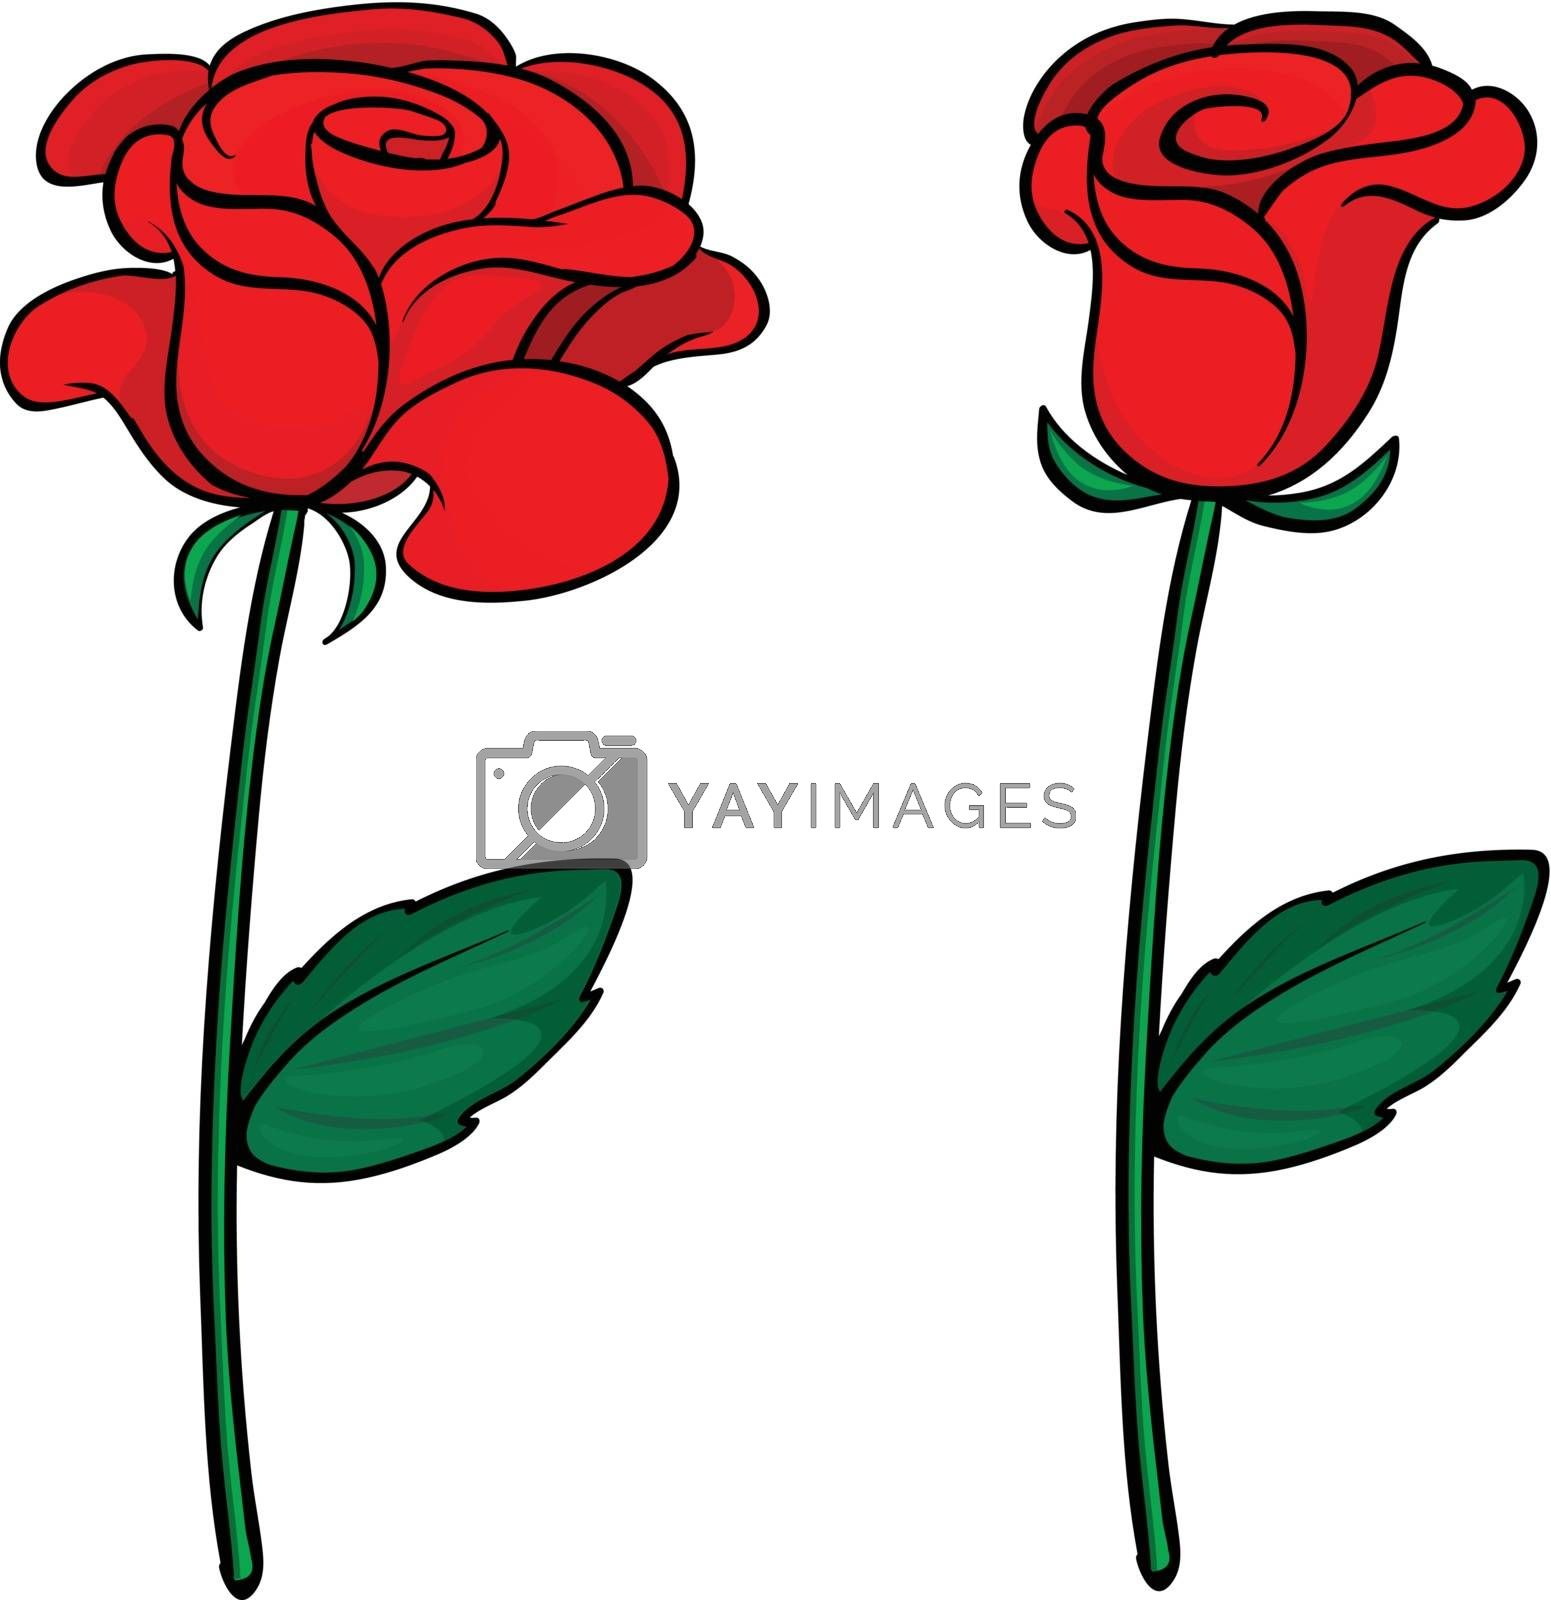 Illustration of two red roses on a white background